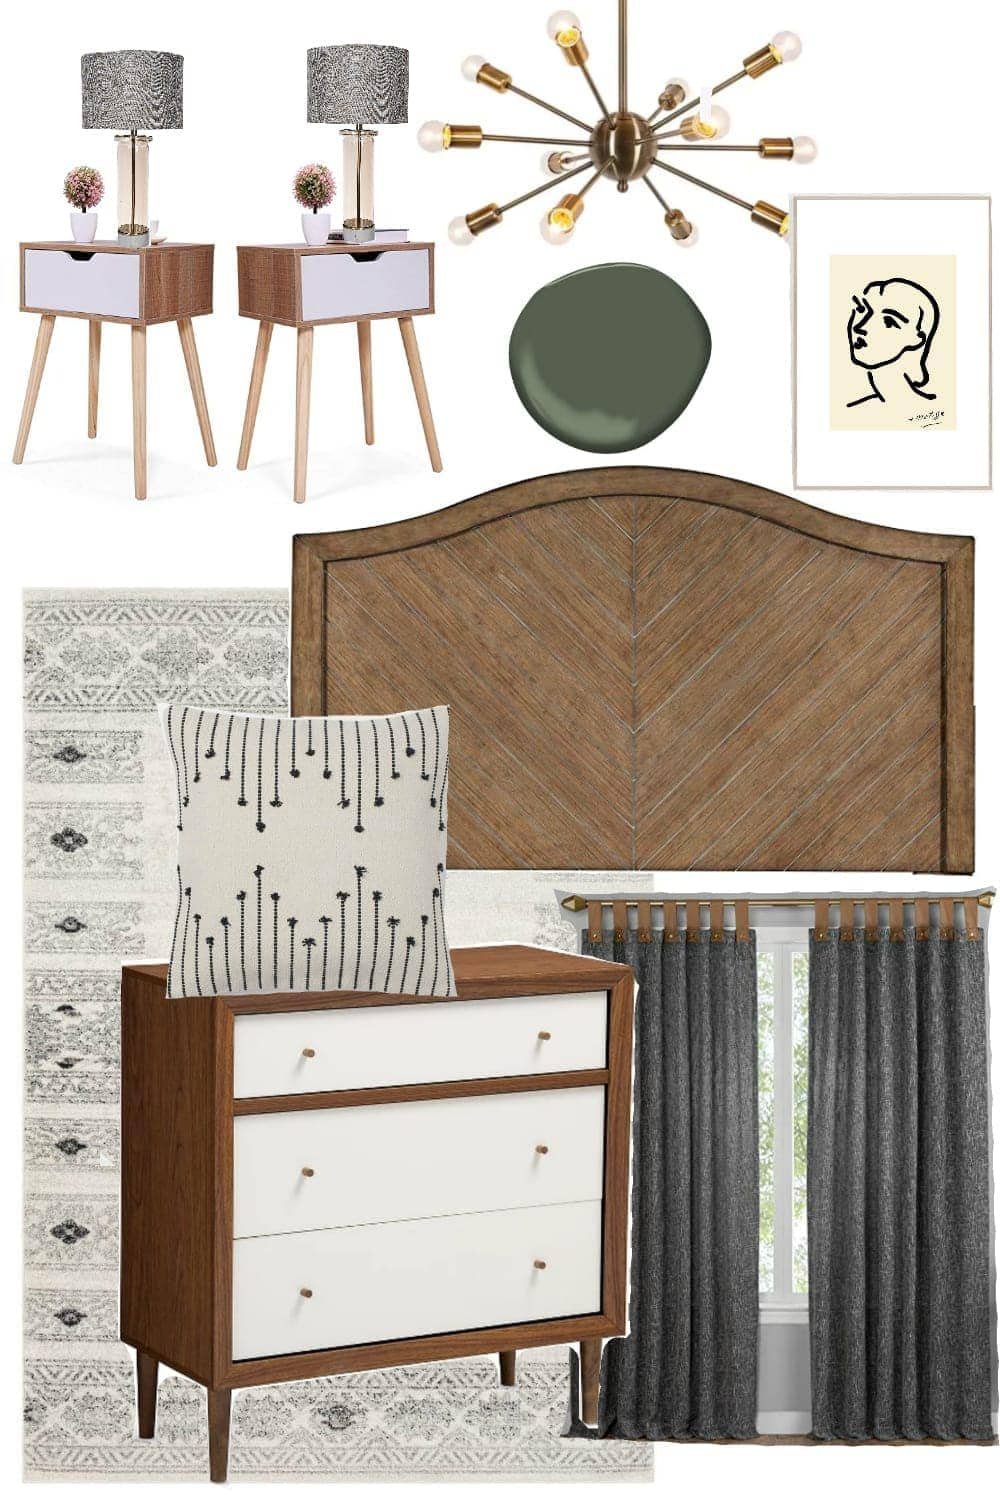 Mid-Century Mod Bedroom Design Mood Board